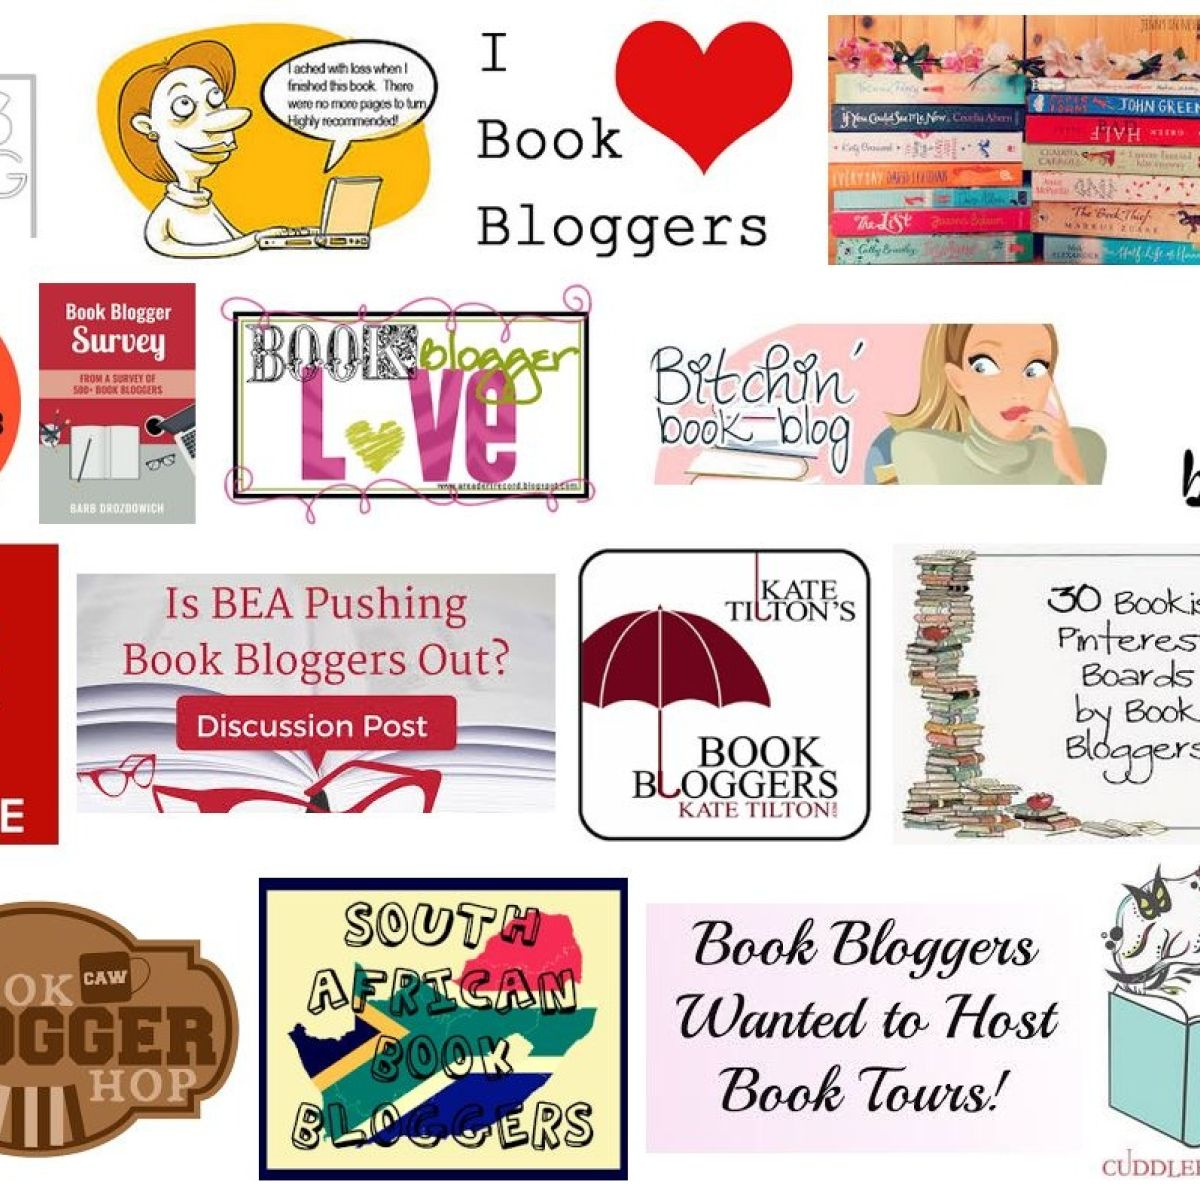 Book bloggers are real readers